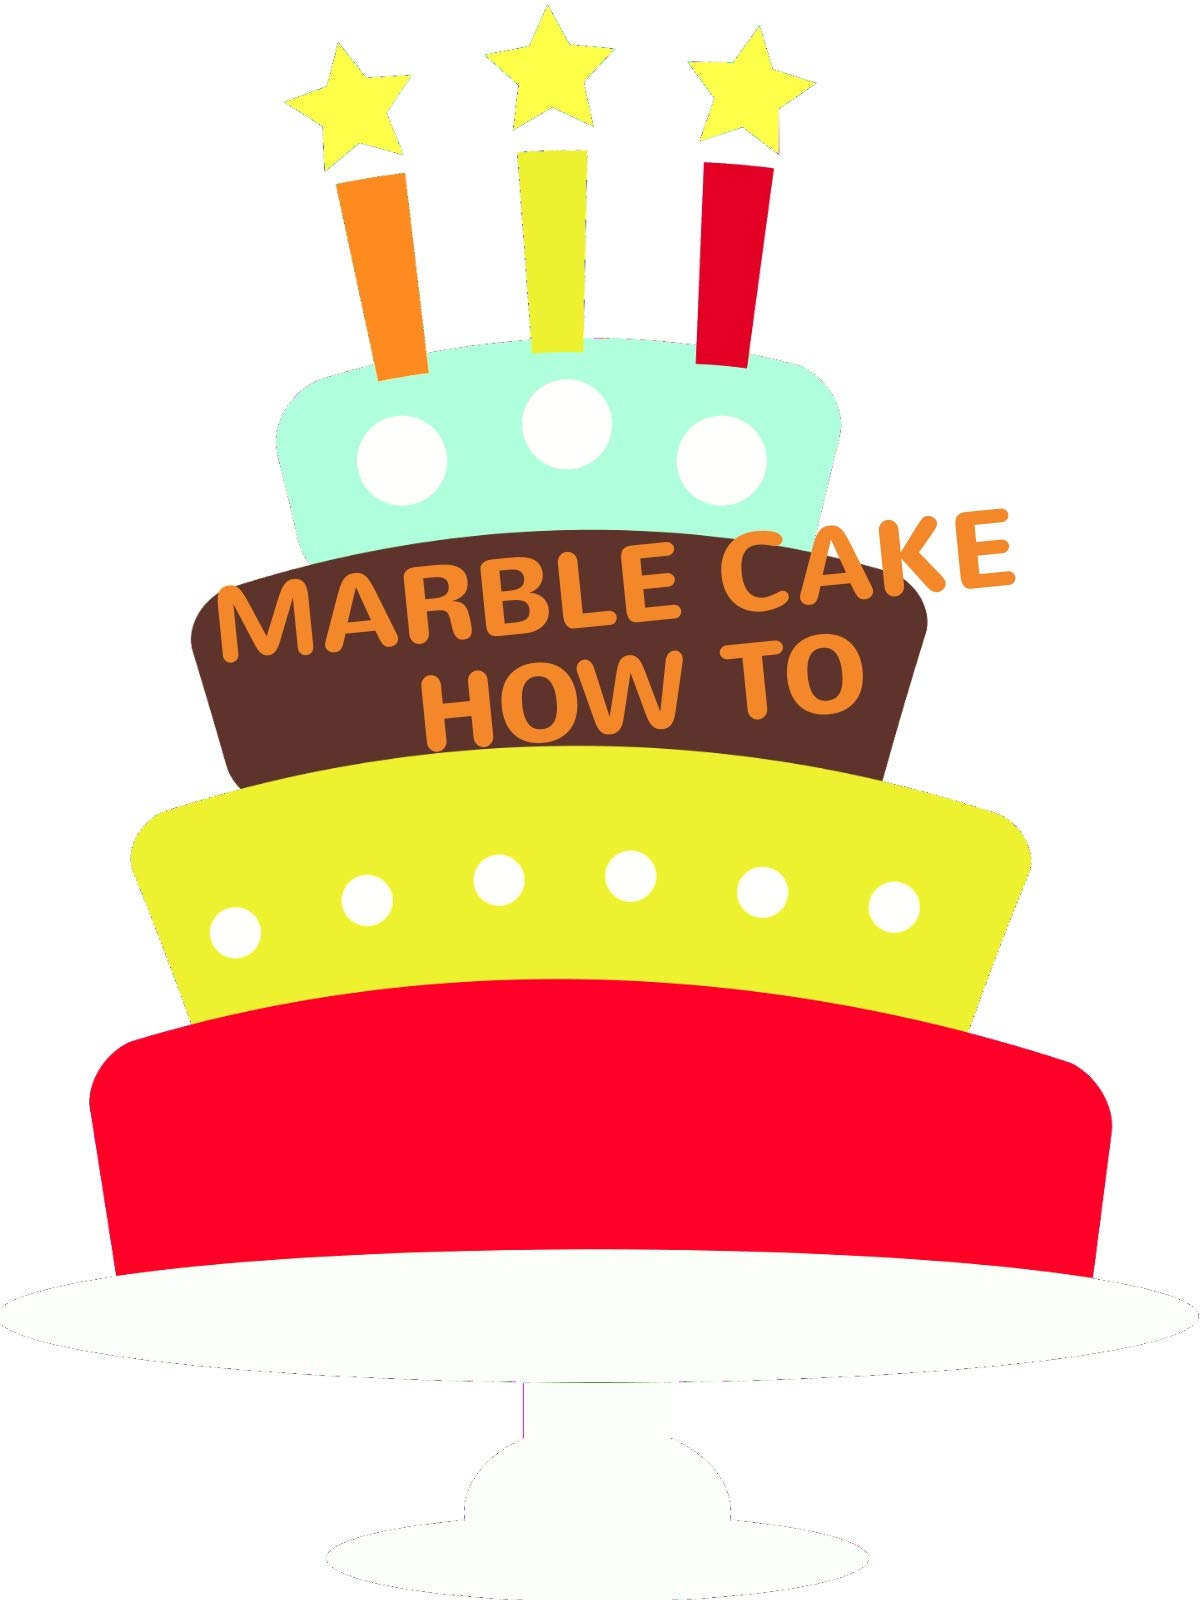 Marble cake how to on Amazon Prime Instant Video UK